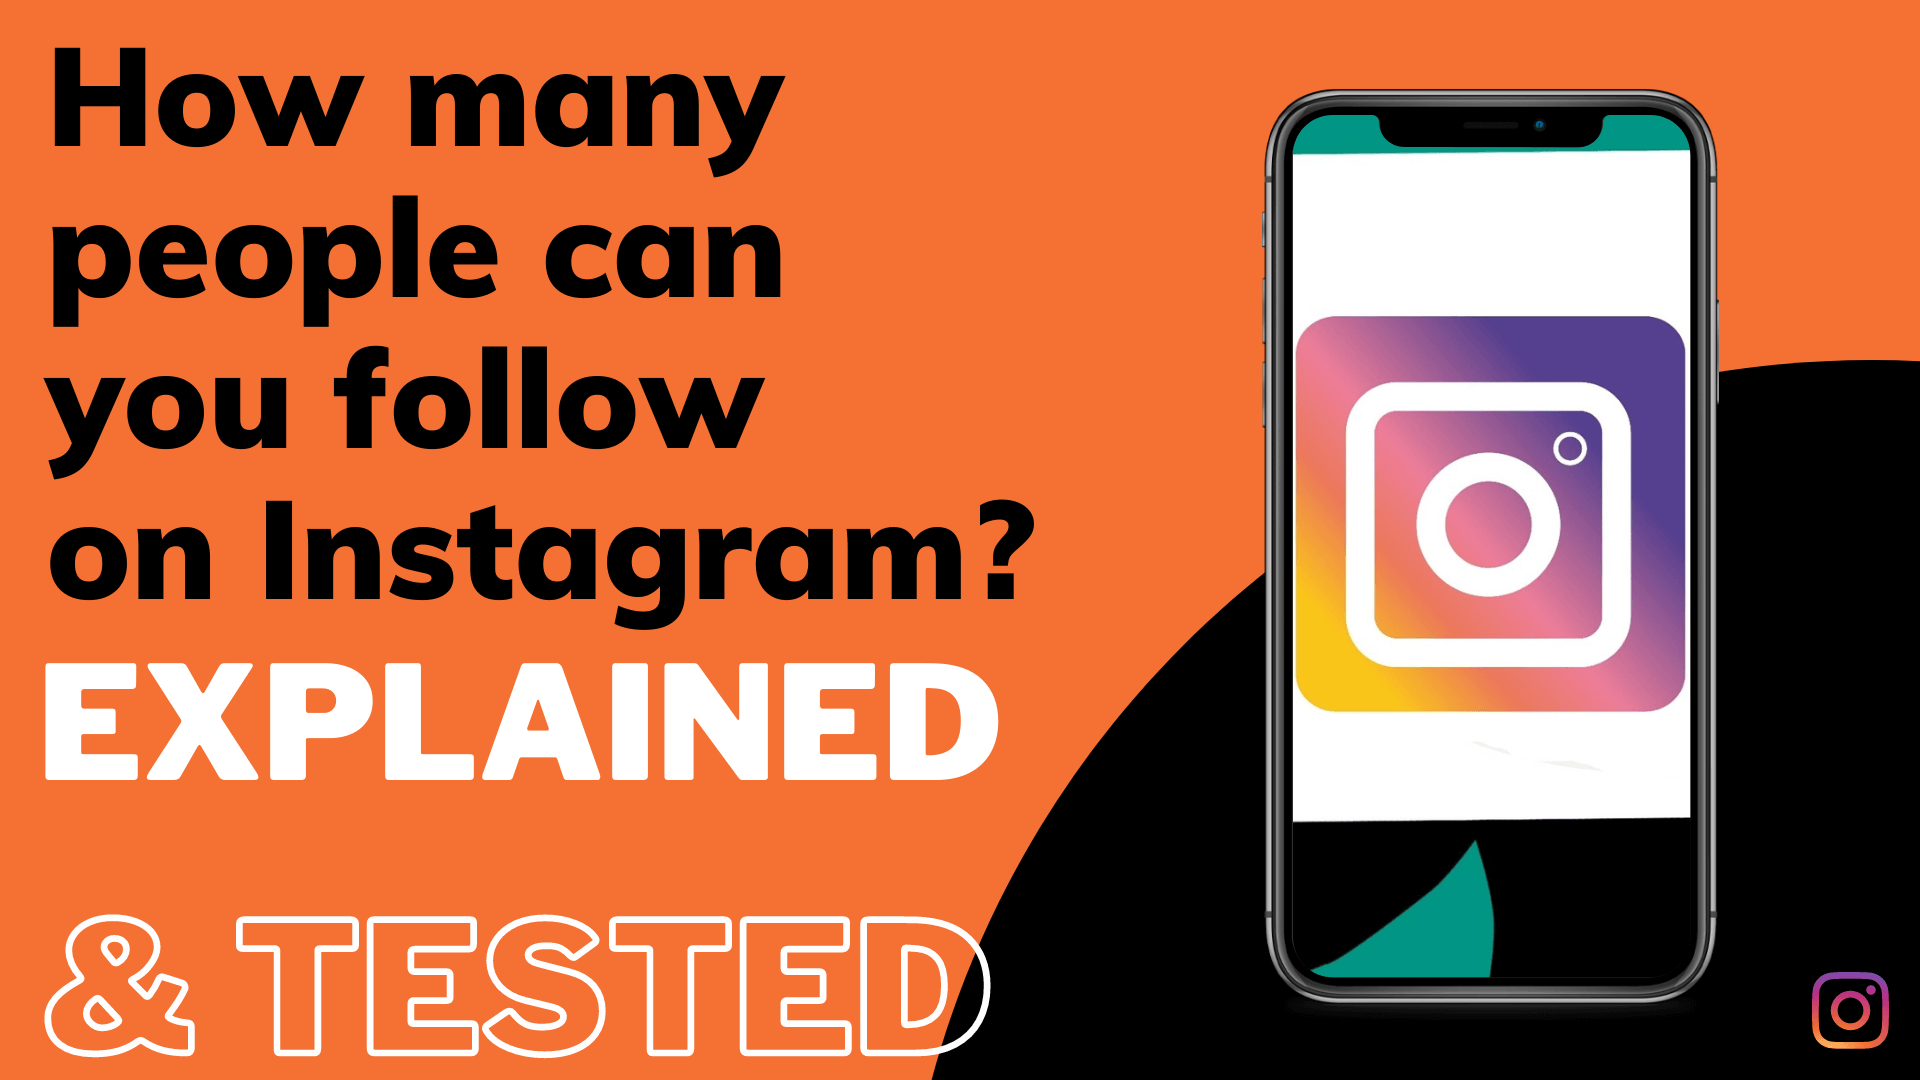 How many people can you follow on Instagram? SOLVED ✅